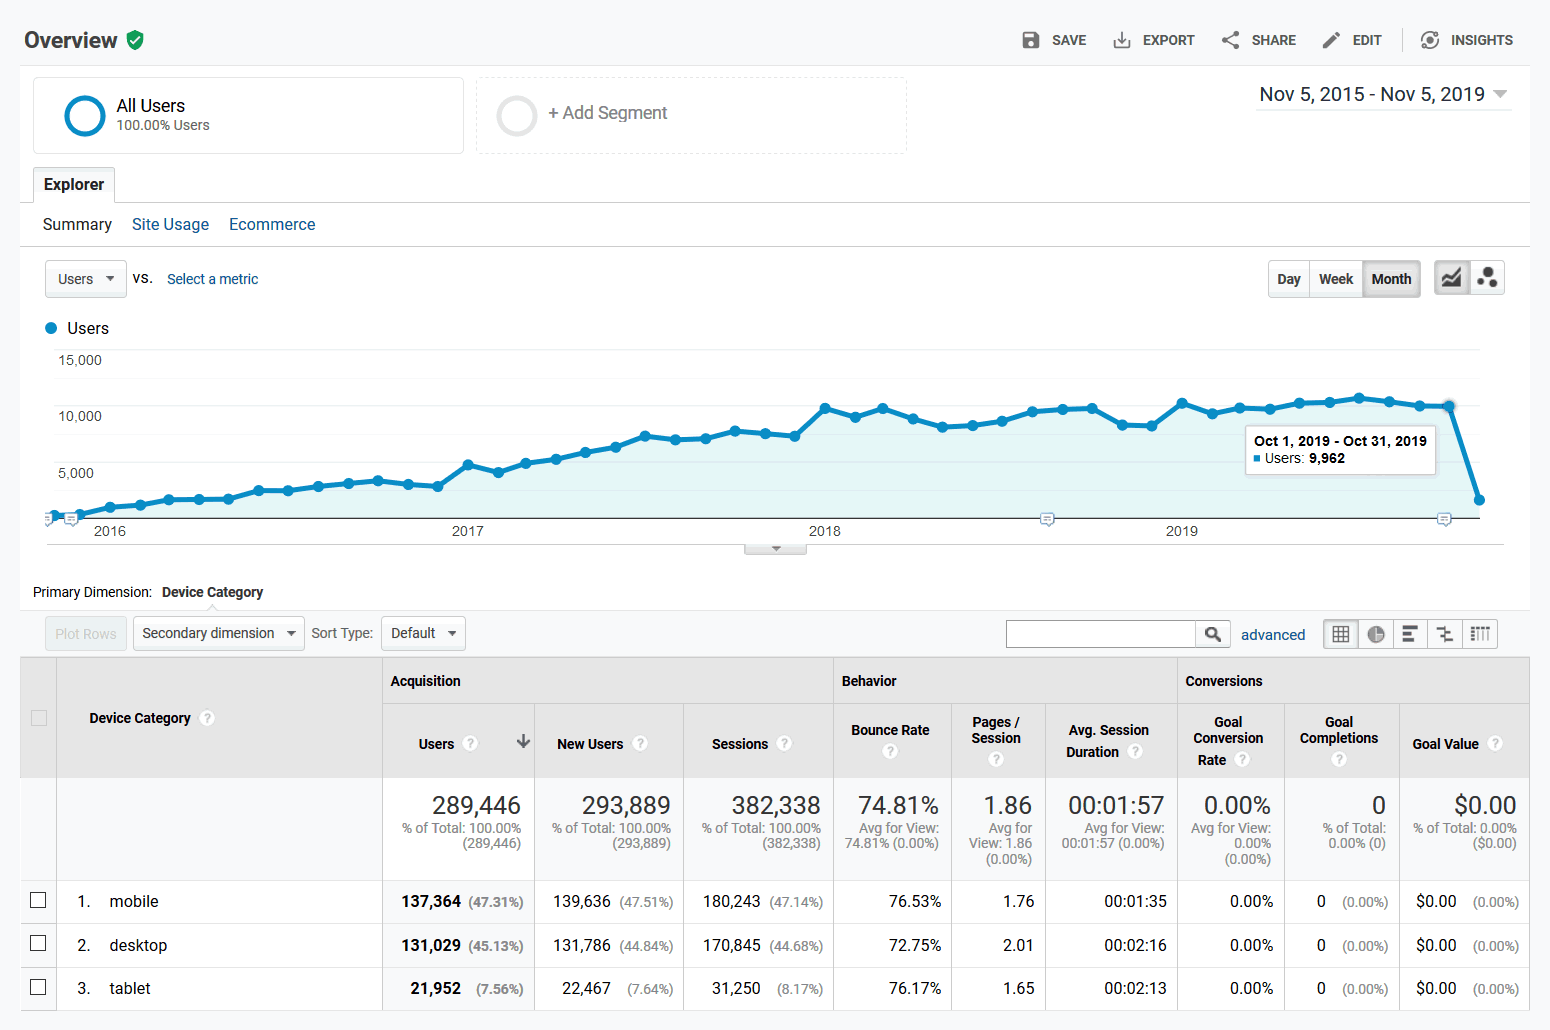 Google Analytics - Device Overview - 2015-11-05 through 2019-11-05